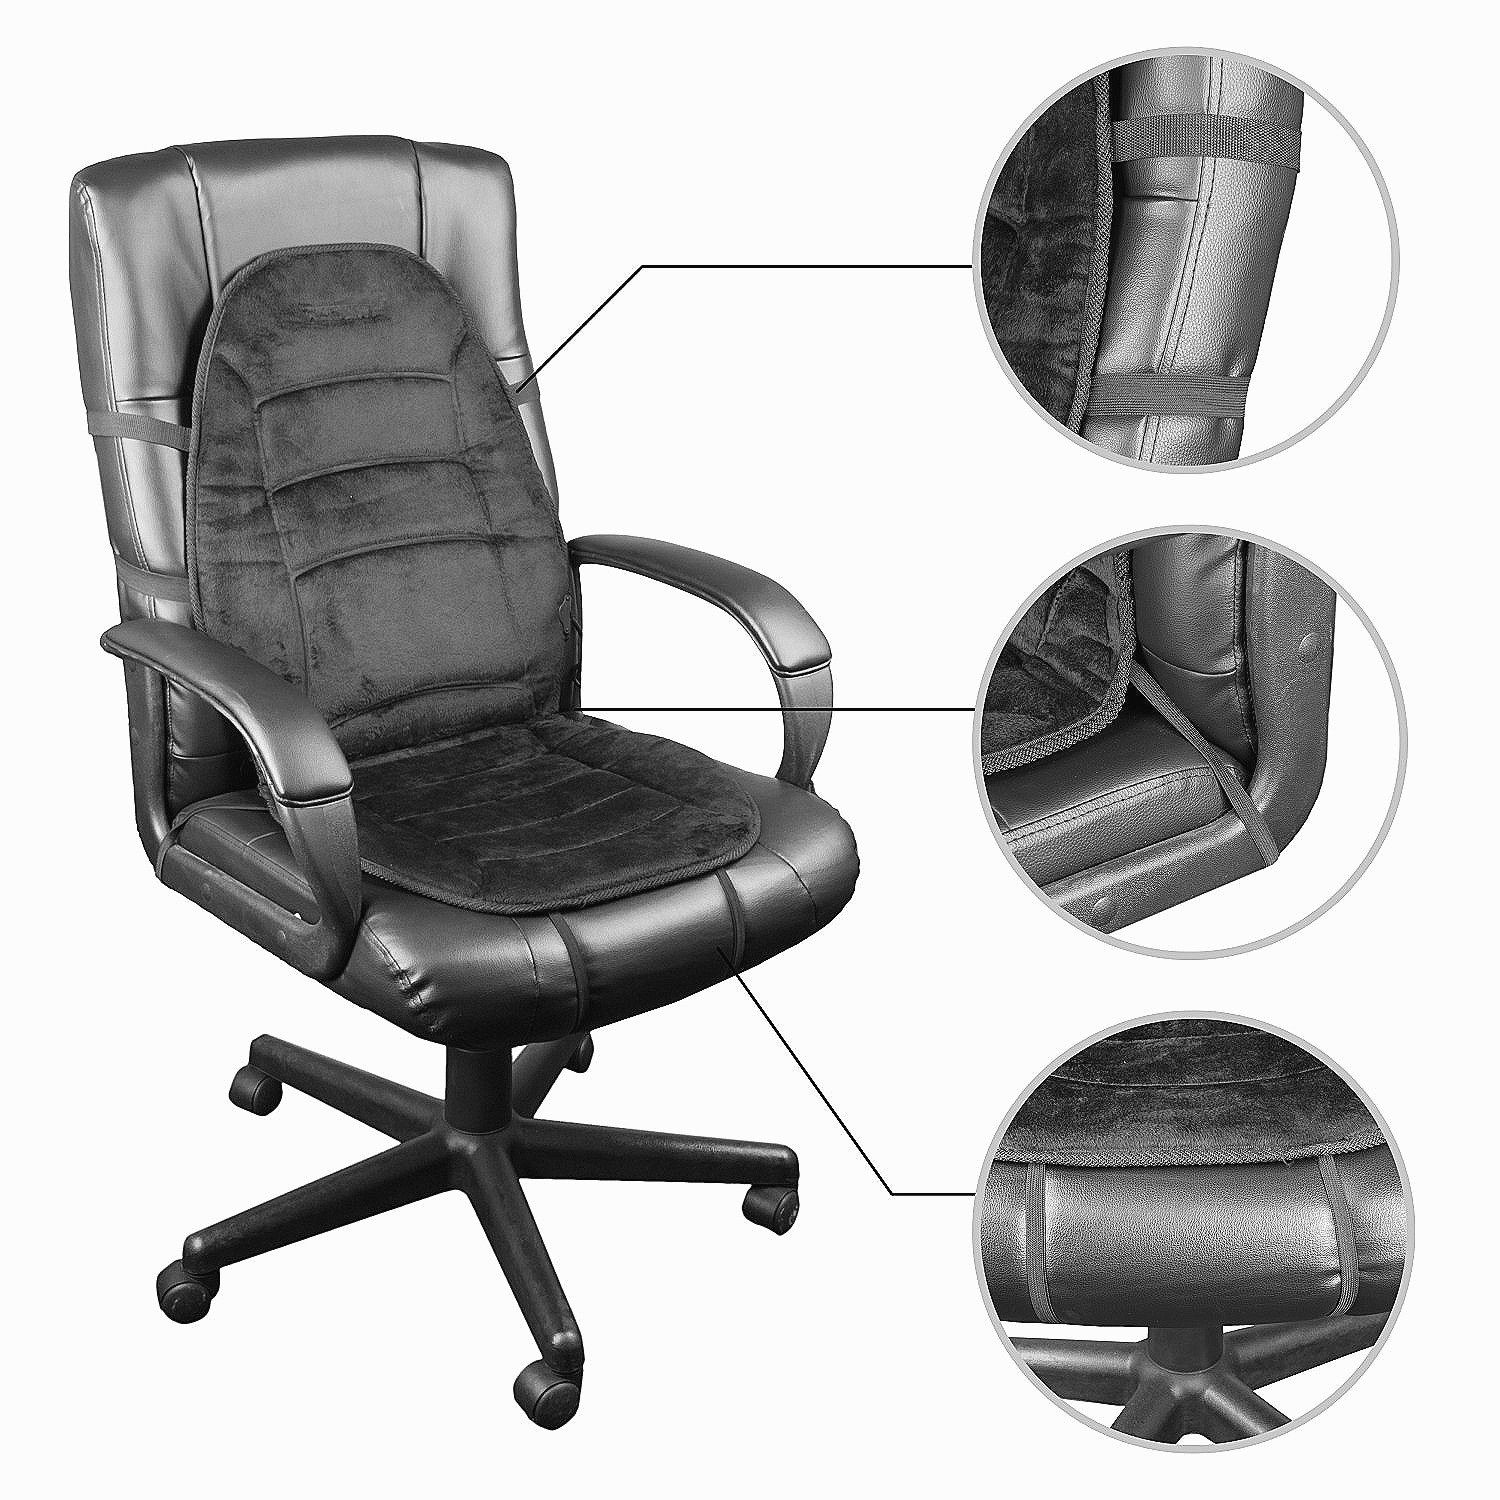 Heated Office Chair Pad Home Furniture Set Check More At Http Www Drjamesghoodblog Desk Exclusive Ideas